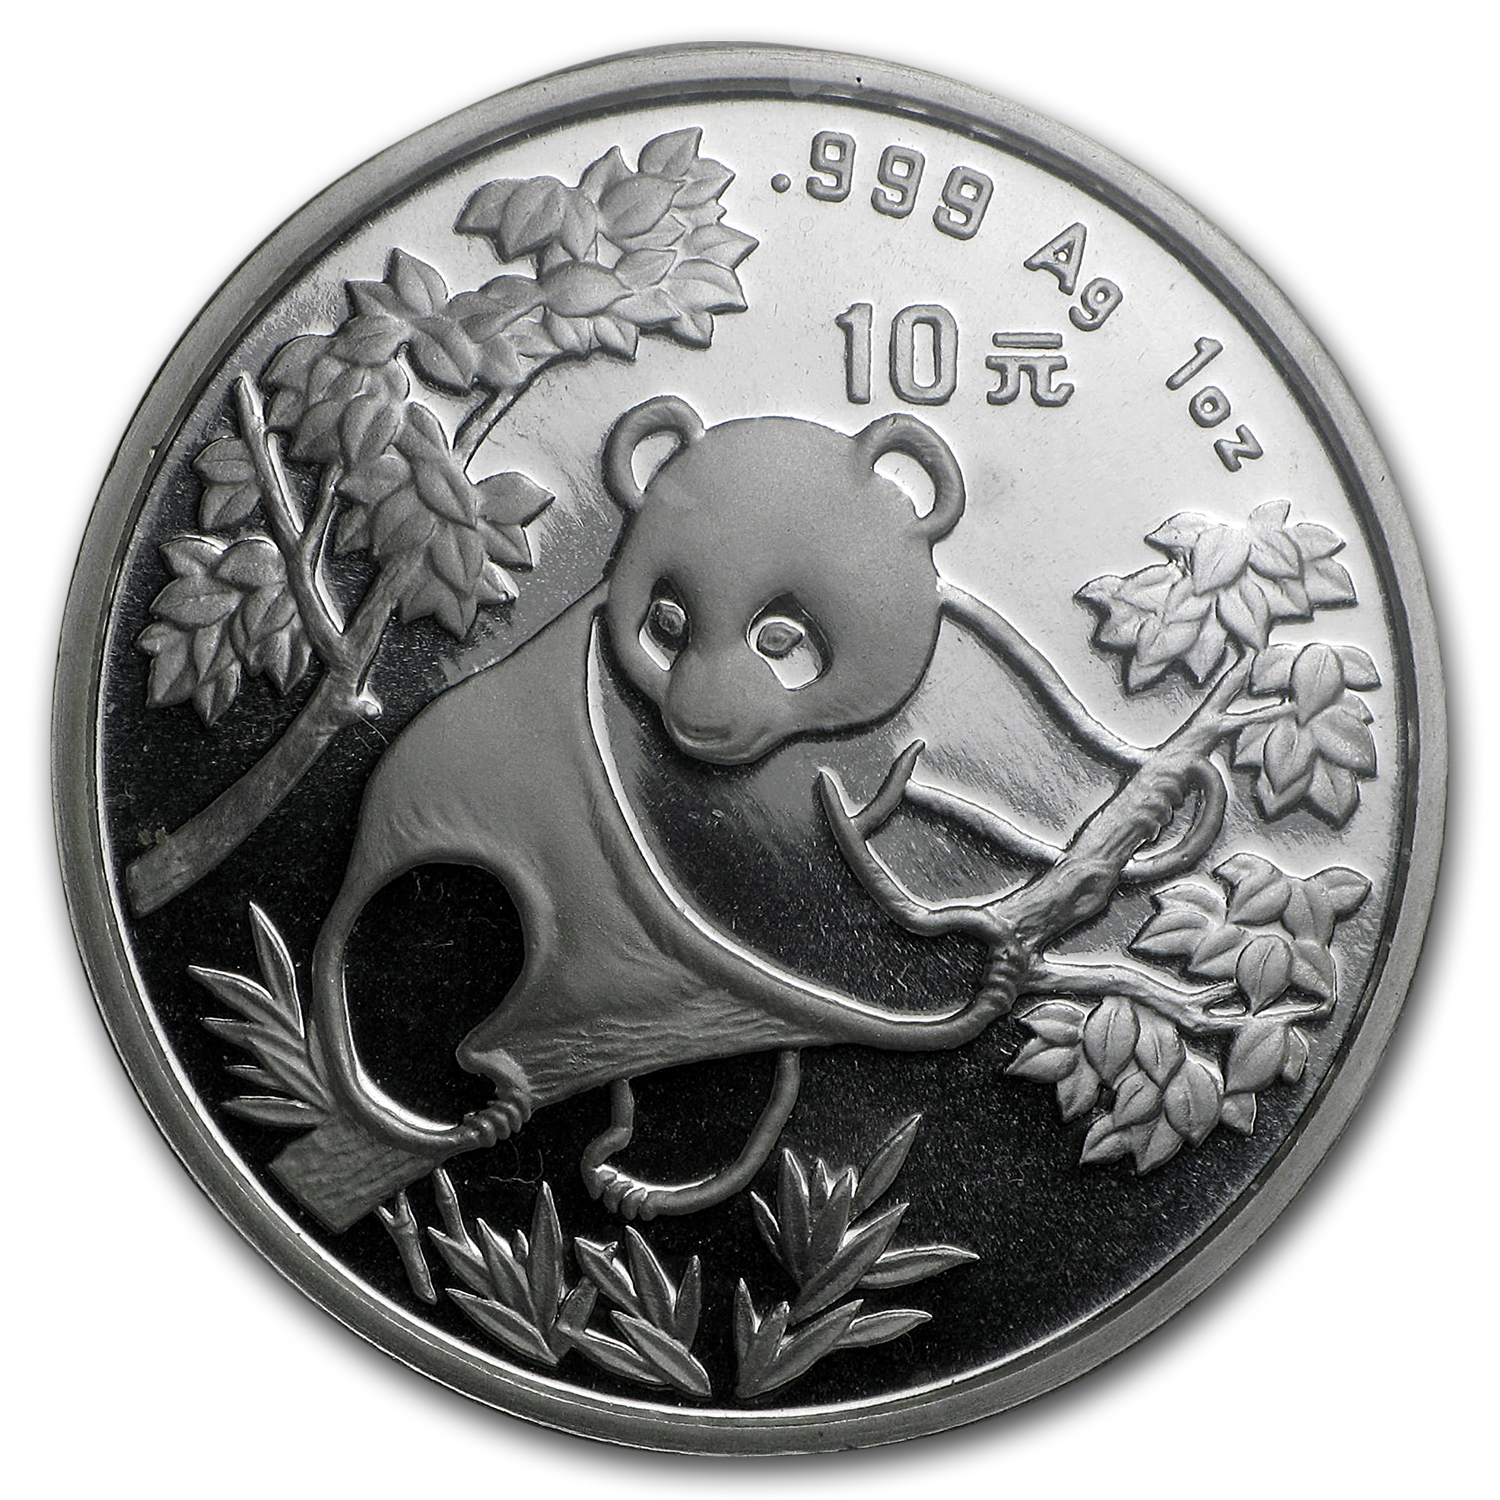 1992 China 1 oz Silver Panda Large Date BU (Sealed)